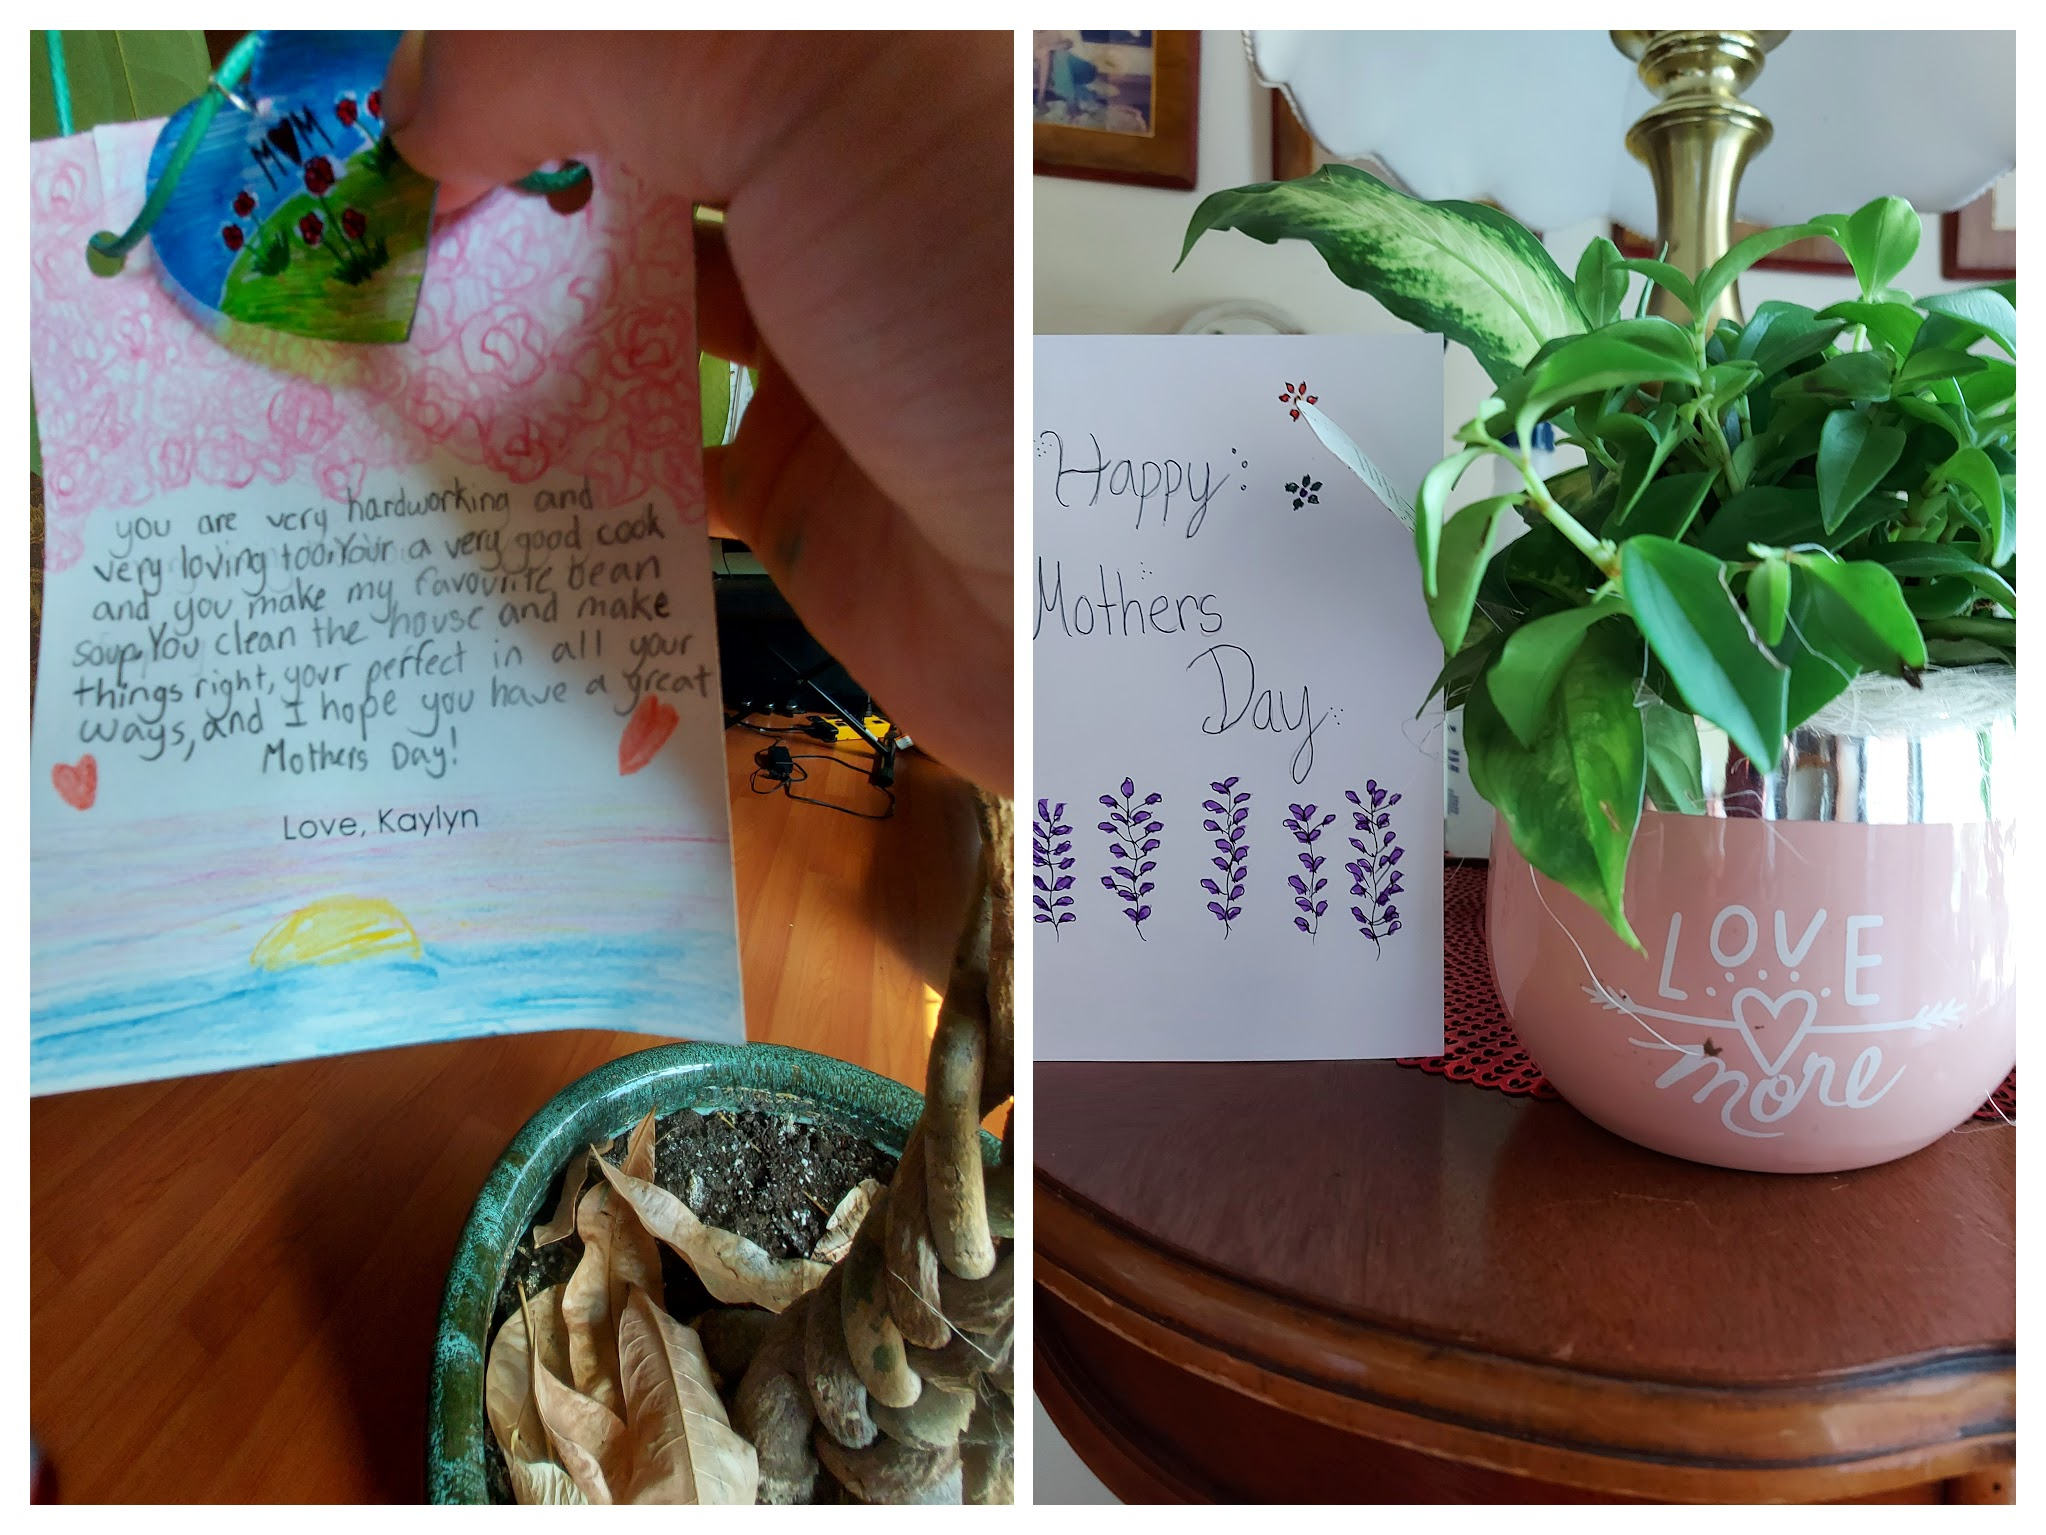 Homemade Mother's Day Cards And Plants Gift.